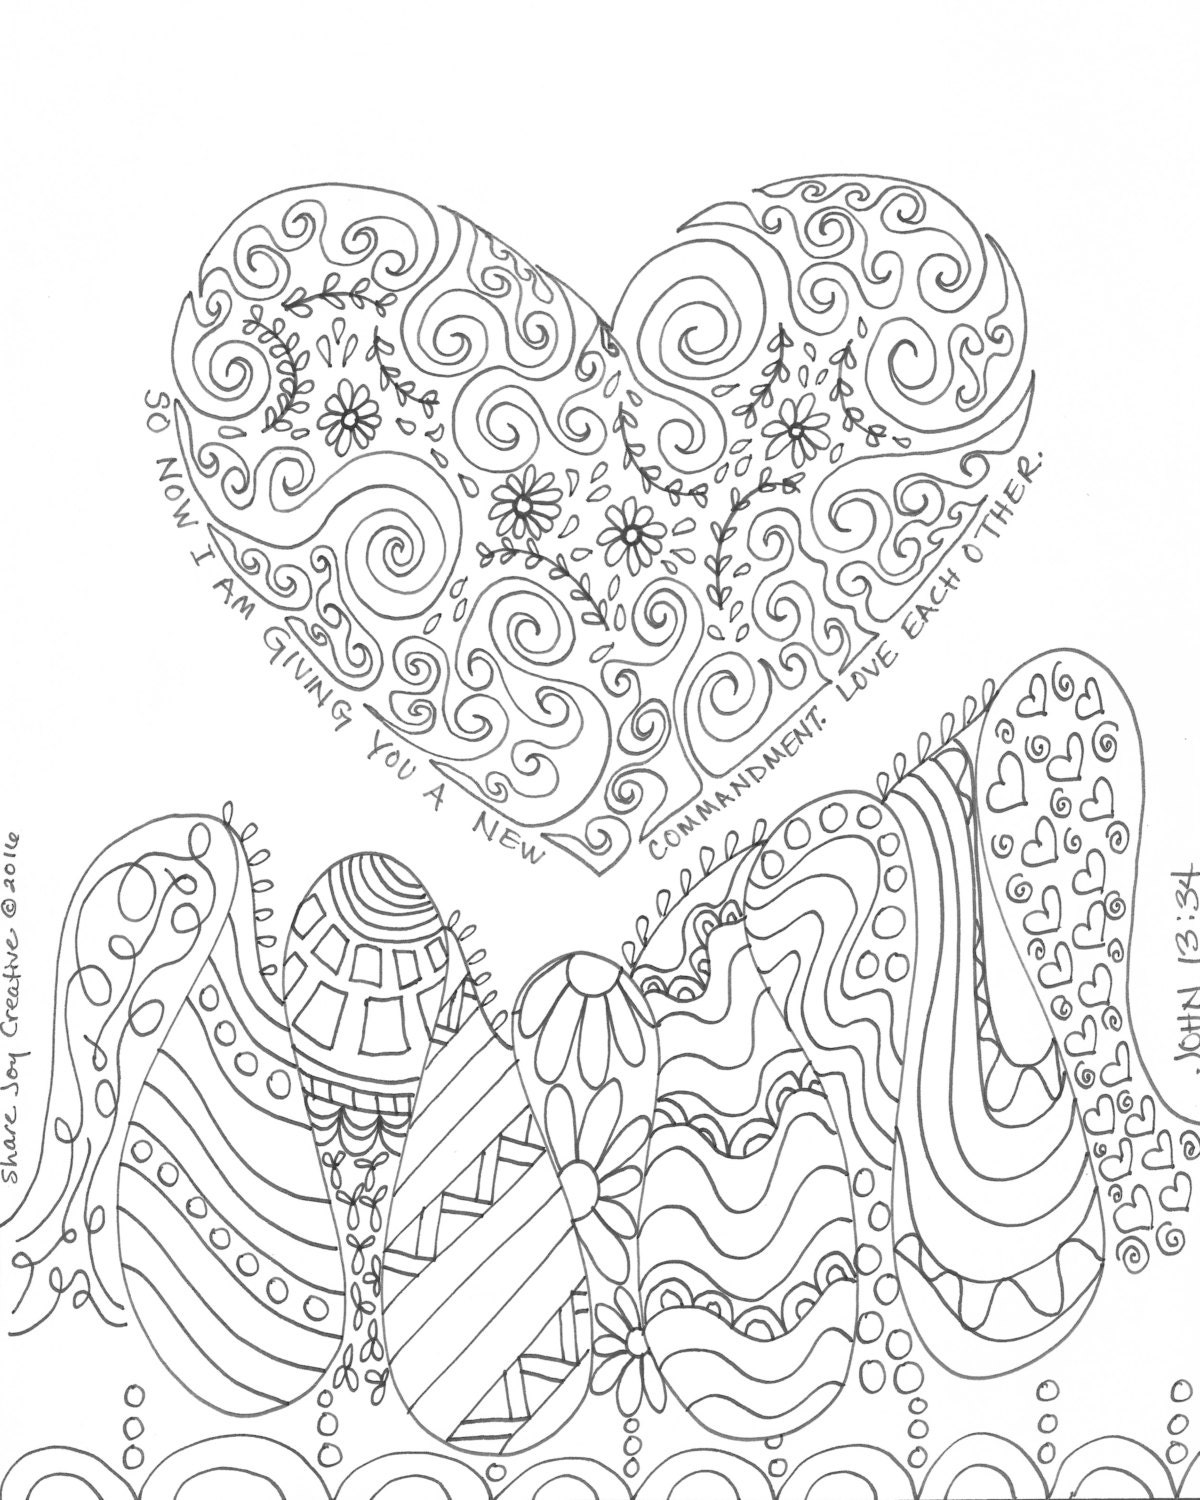 Love Each Other Coloring Page: John 13